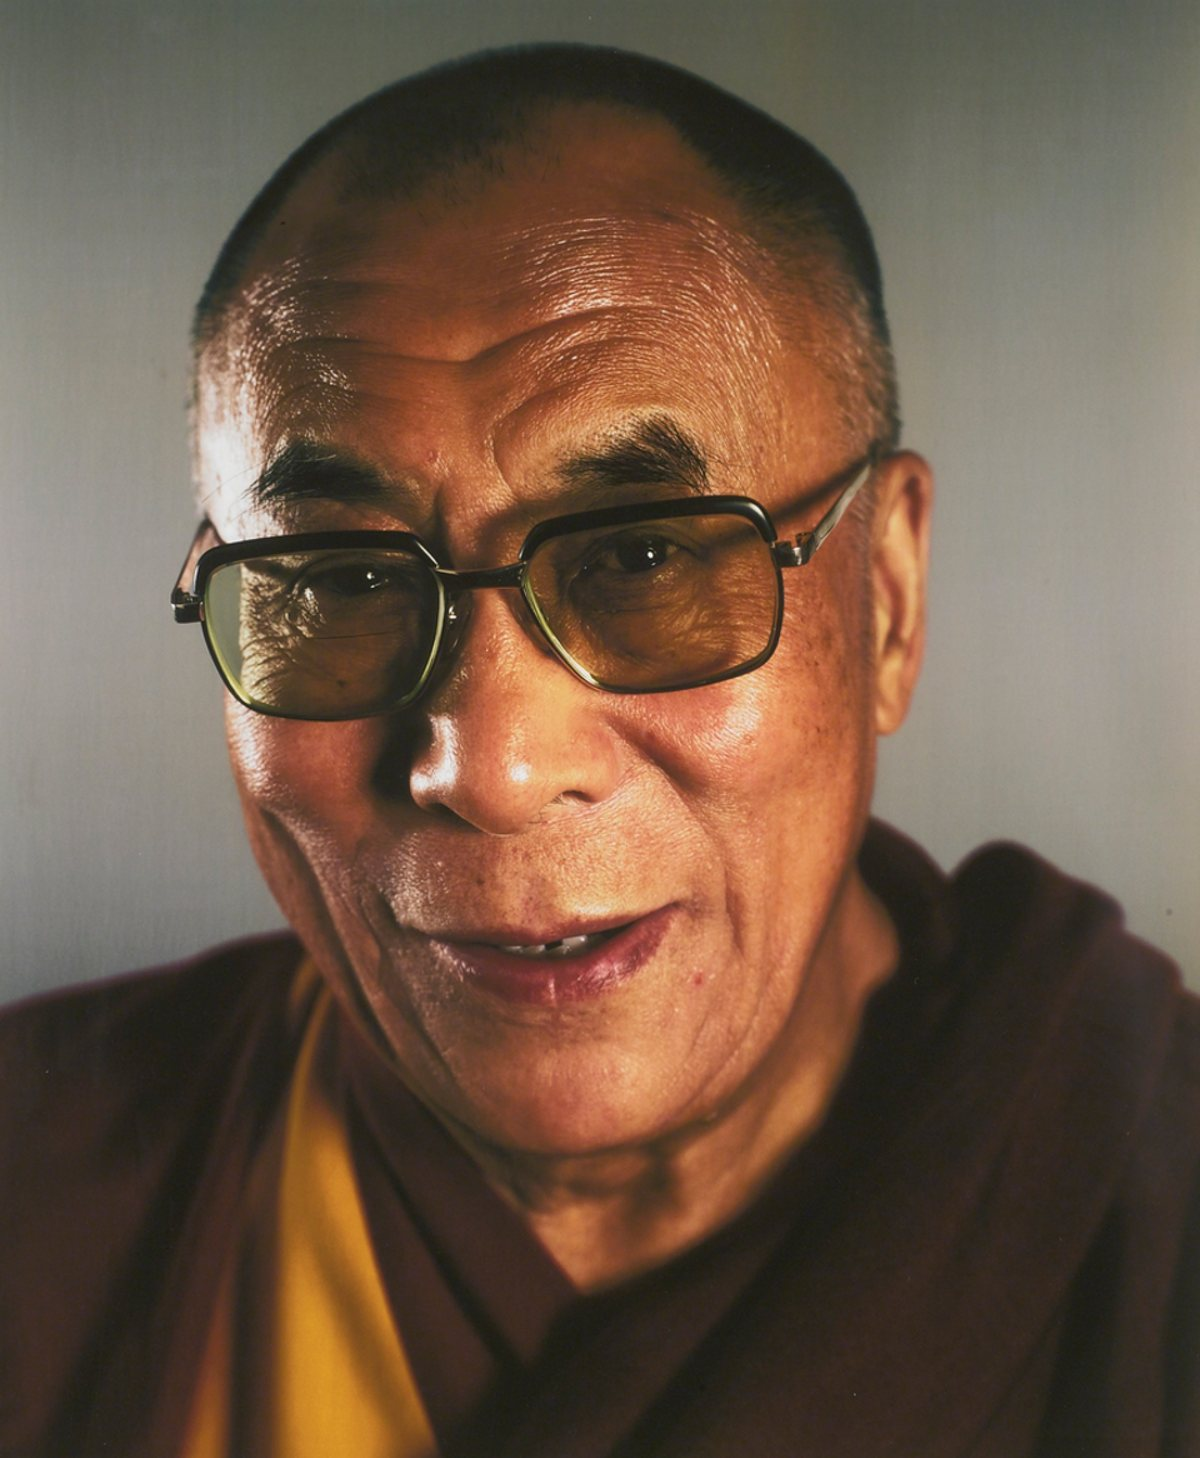 [ C ] Chuck Close - Dalai Lama (2005) | Credit: cea+